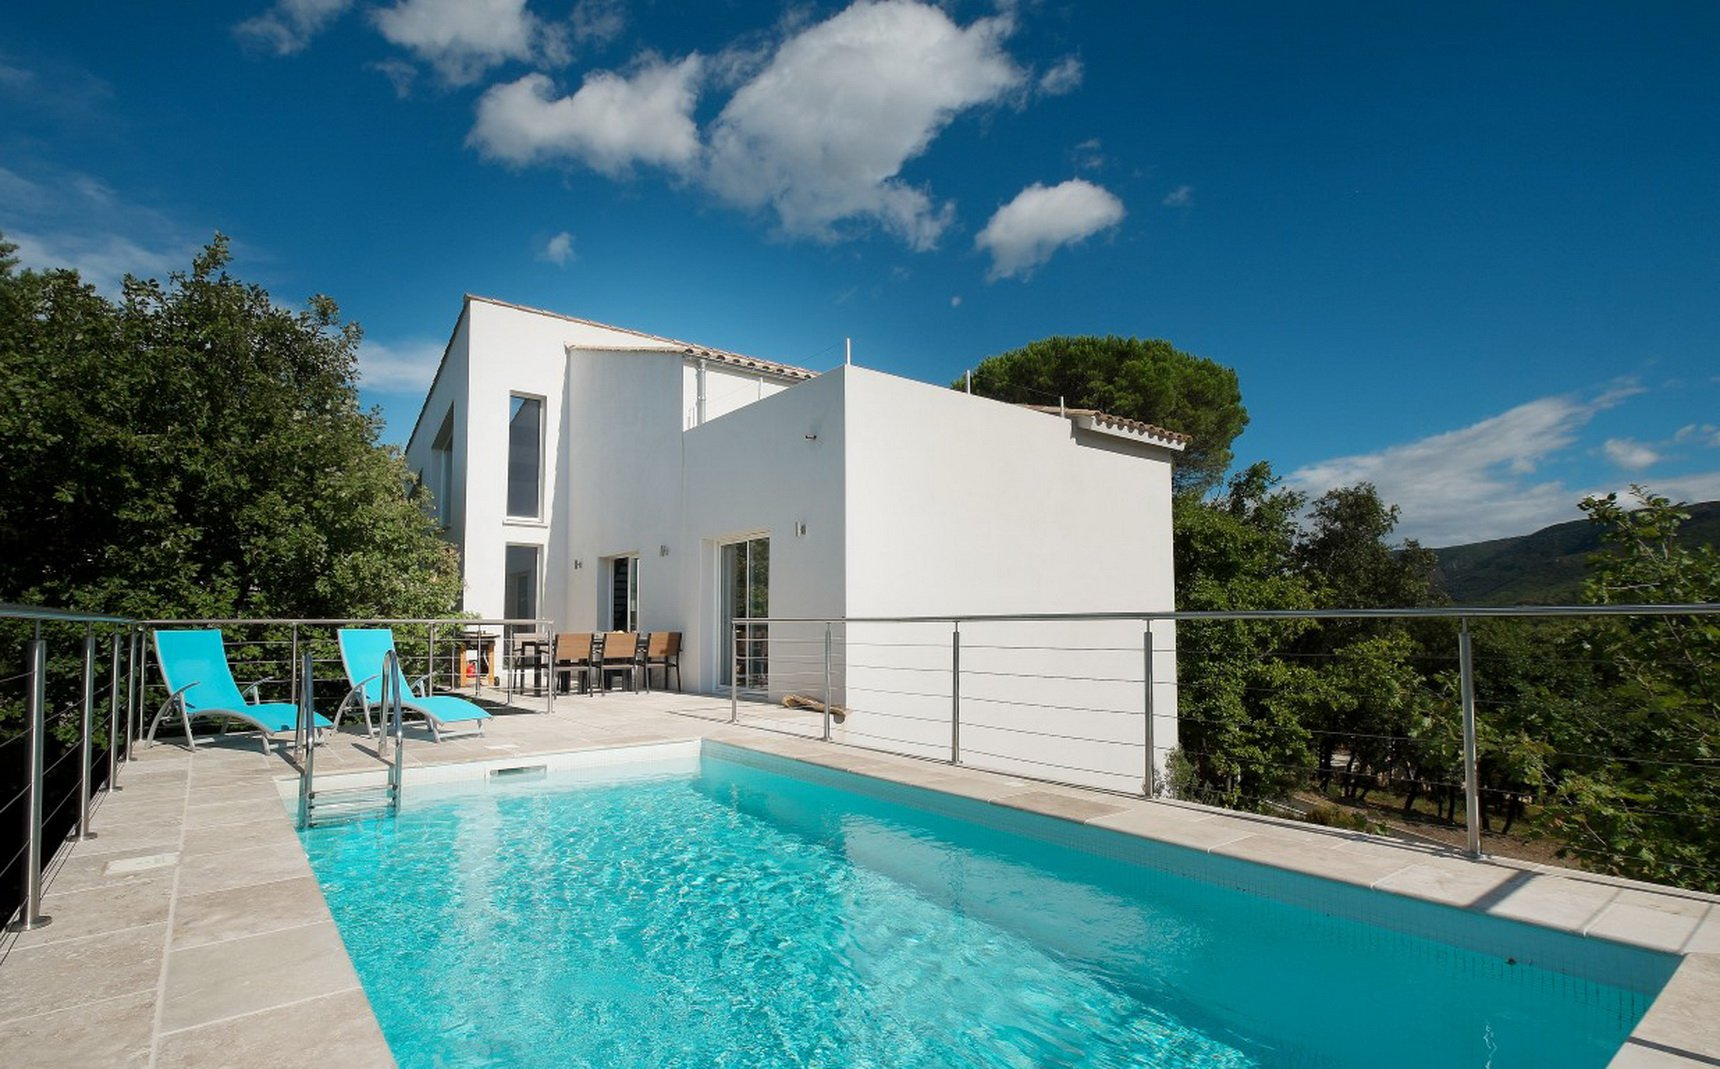 Contemporary villa with pool and stunning views